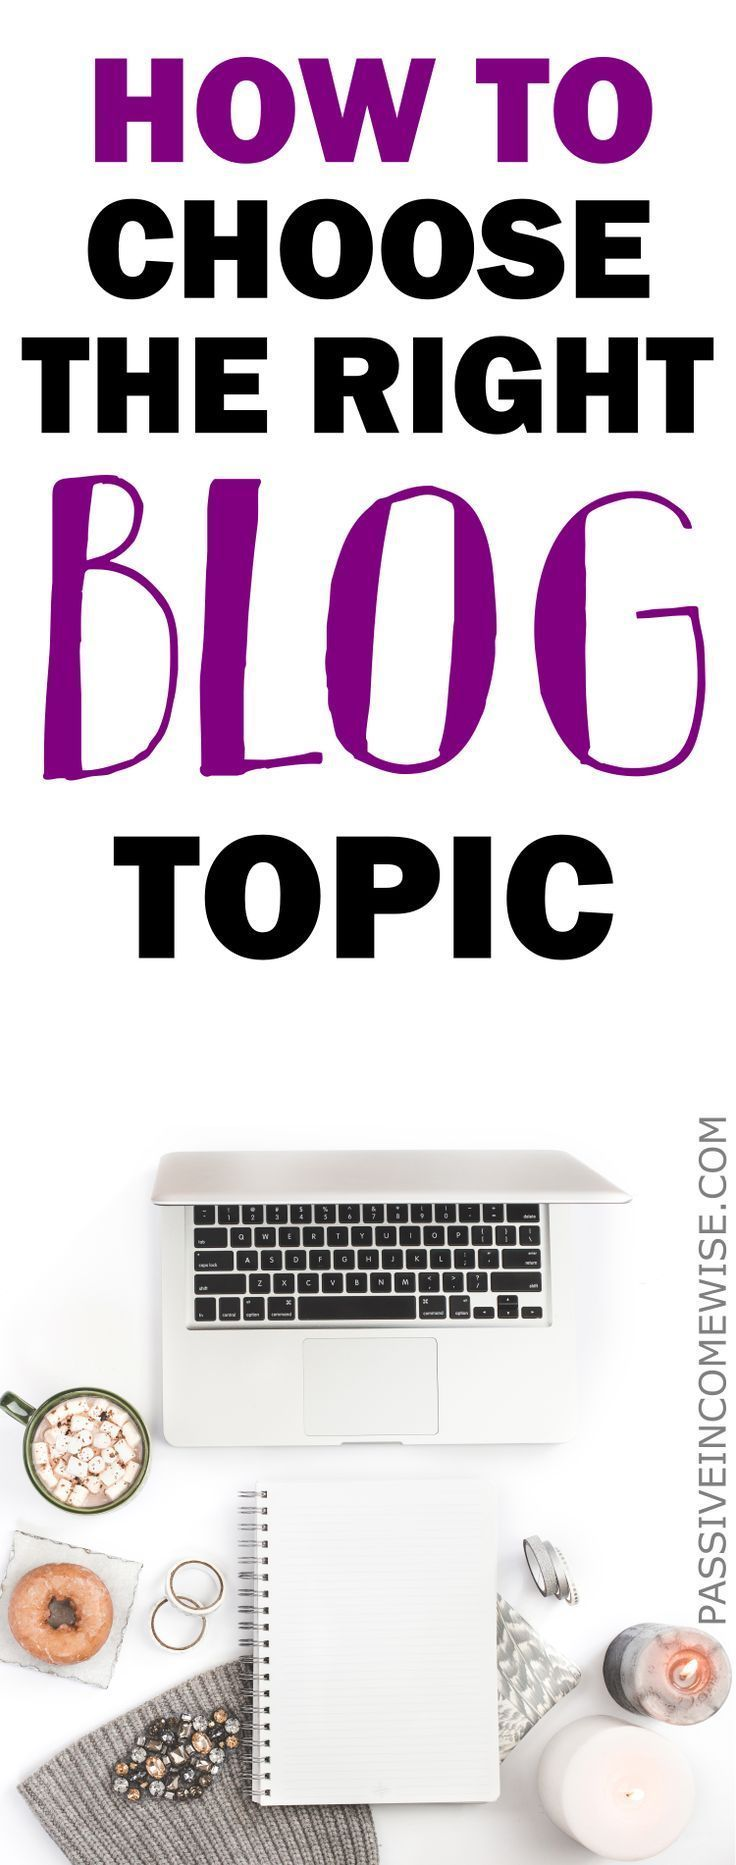 "The two most common questions I am asked from someone who wants start a blog are ""What topic should I blog about?"" and ""How should I name my blog?"" Best blog topics, domain name ideas, start a blog, blog niche ideas, how to choose blog name"